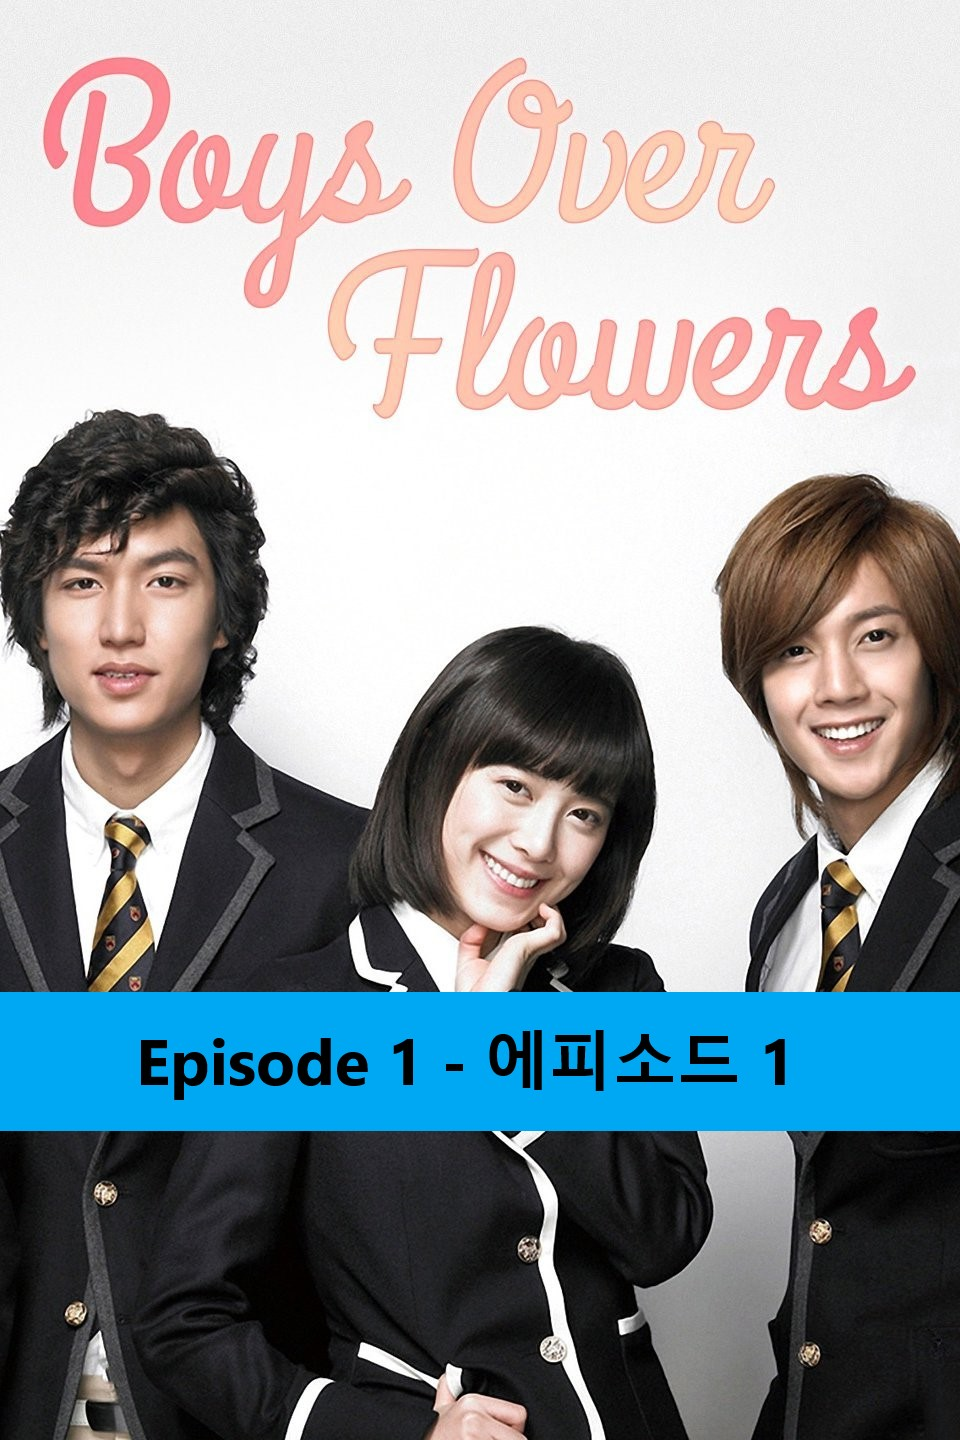 Boys Over Flowers Episode 1 - 꽃보다 남자- Hindi Watch Online Download Free thumbnail